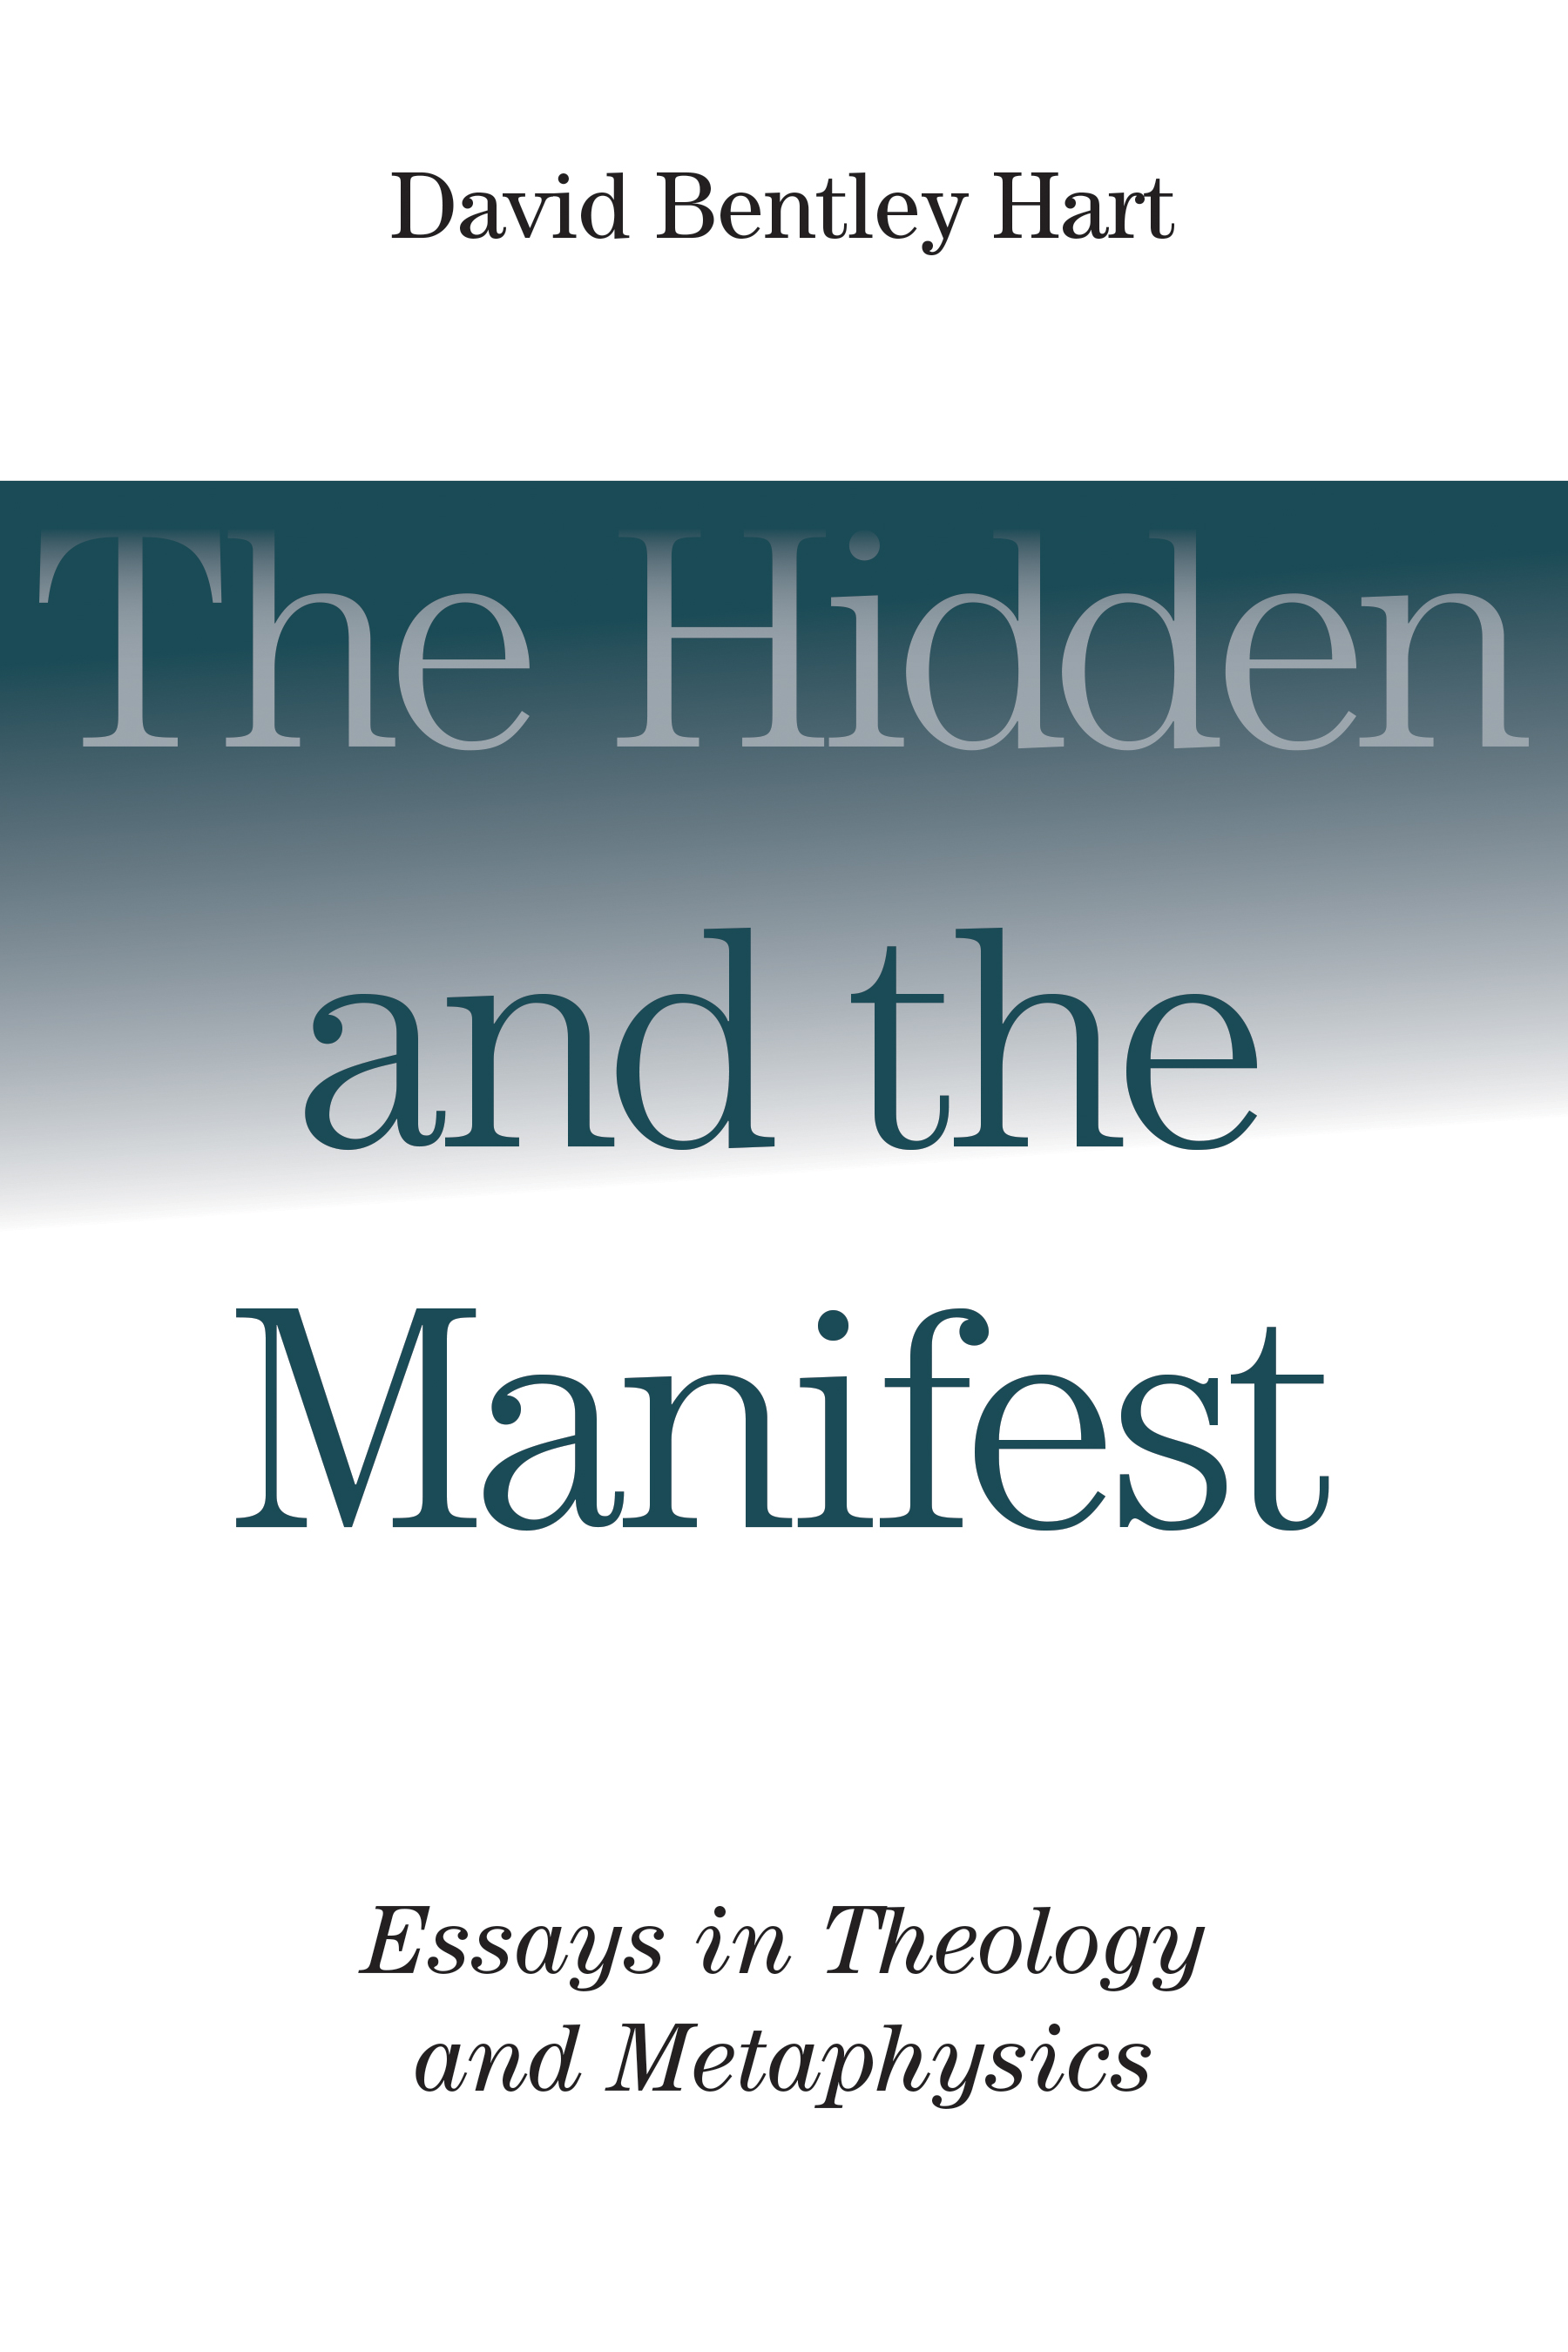 the hidden and the manifest david bentley hart eerdmans